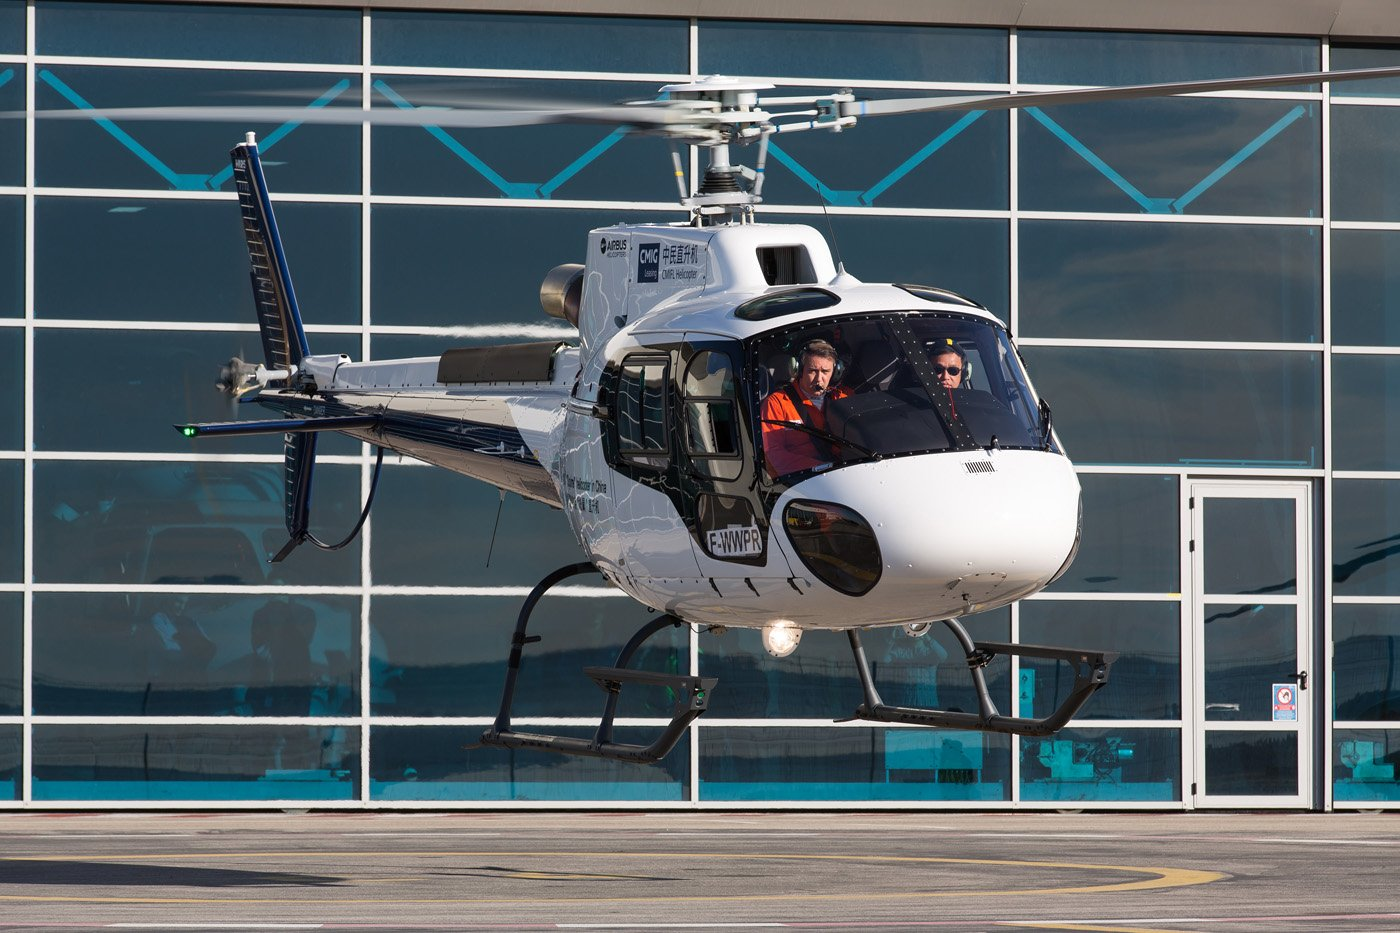 Asia-Pacific leads helicopter market growth